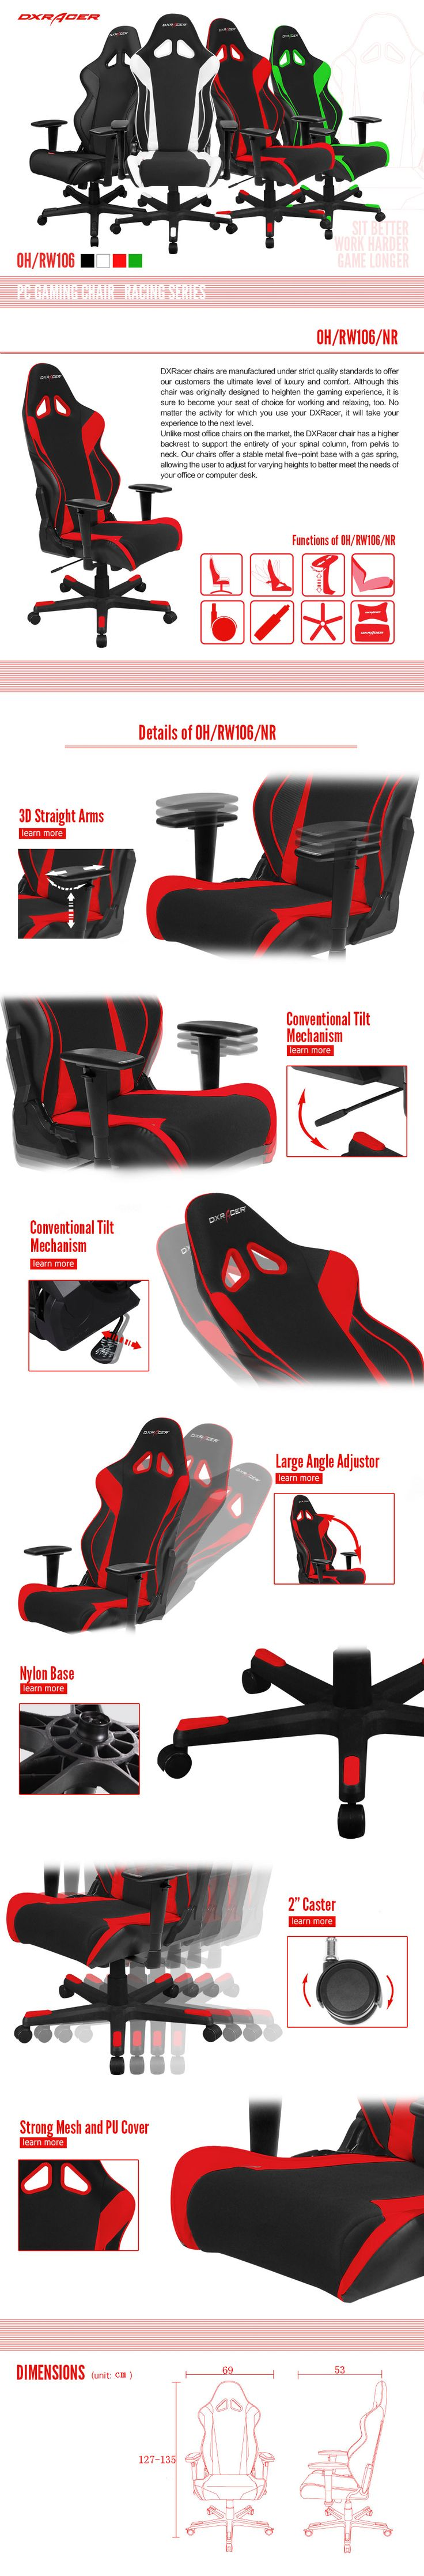 OH/RW106/NR - Racing Series - PC Gaming Chair | DXRacer Official Website